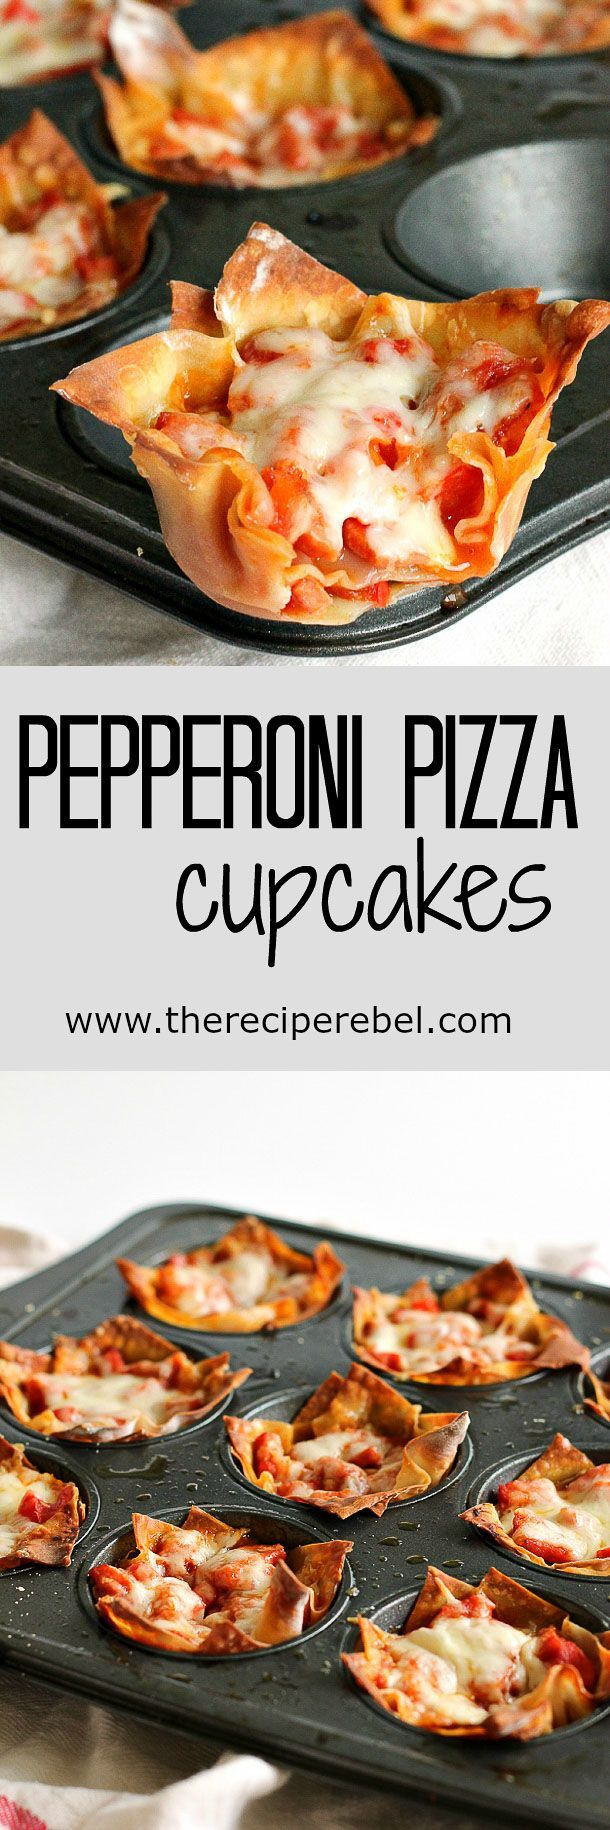 Pepperoni Pizza Cupcakes: pepperoni, cheese, and pizza sauce baked inside of…